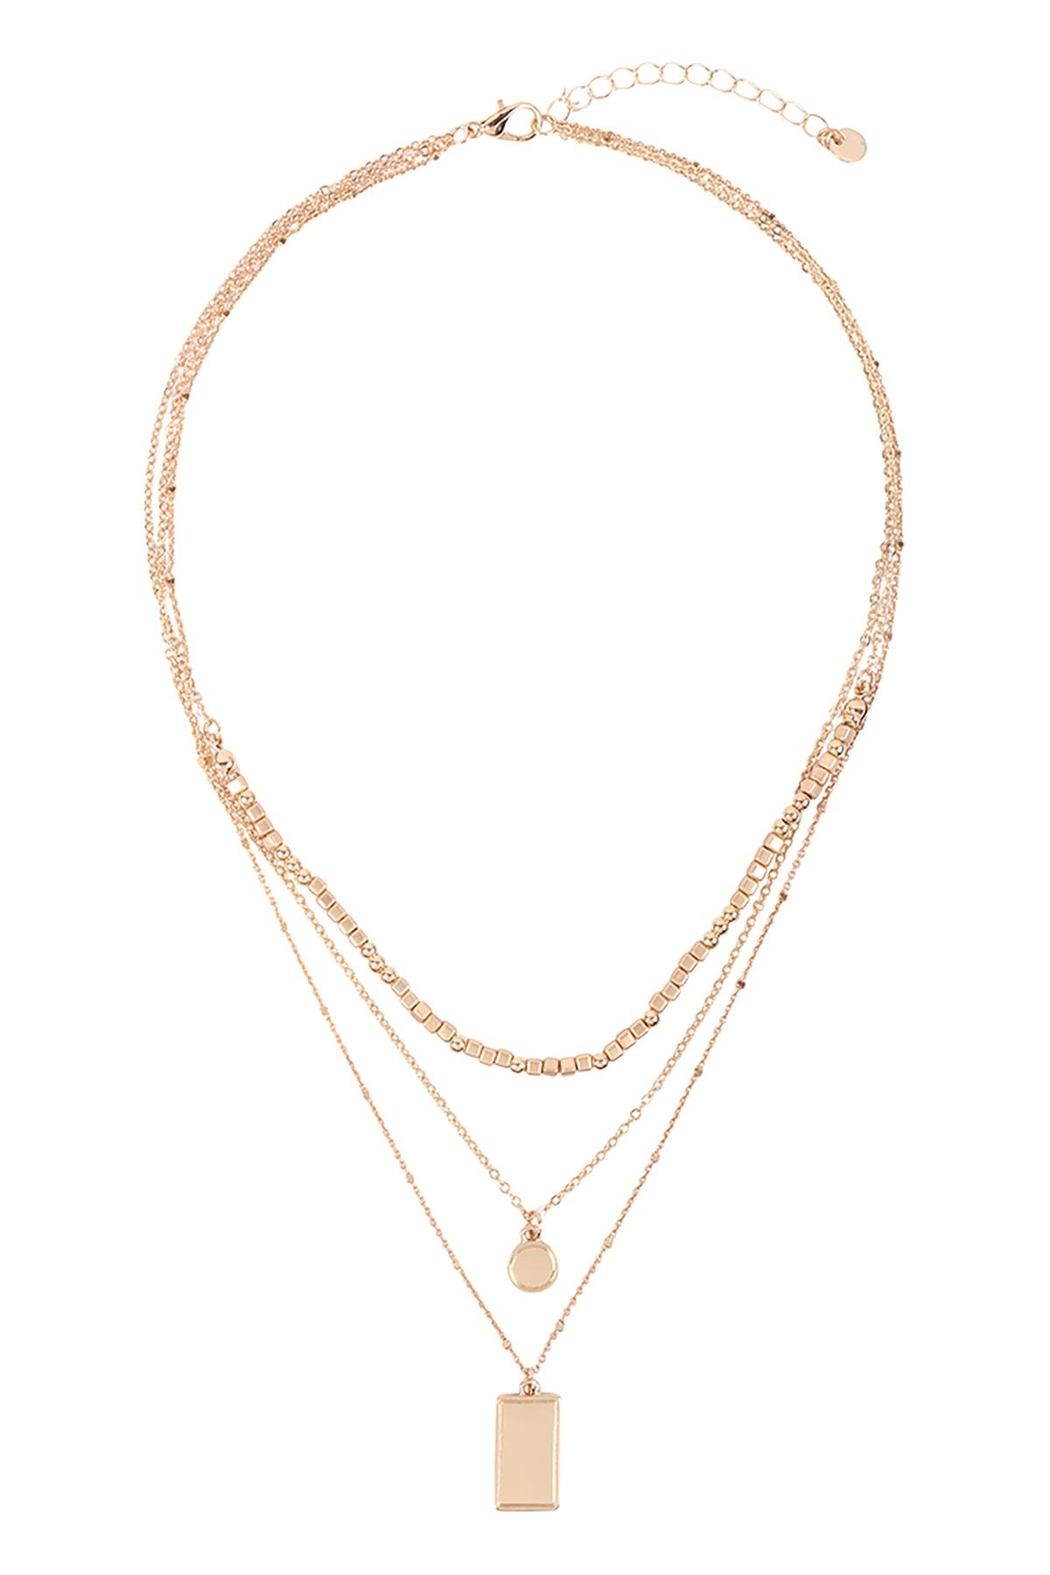 Riah Fashion Square-Round-Pendant-Layered-Mix-Chain-Necklace - Front Full Image